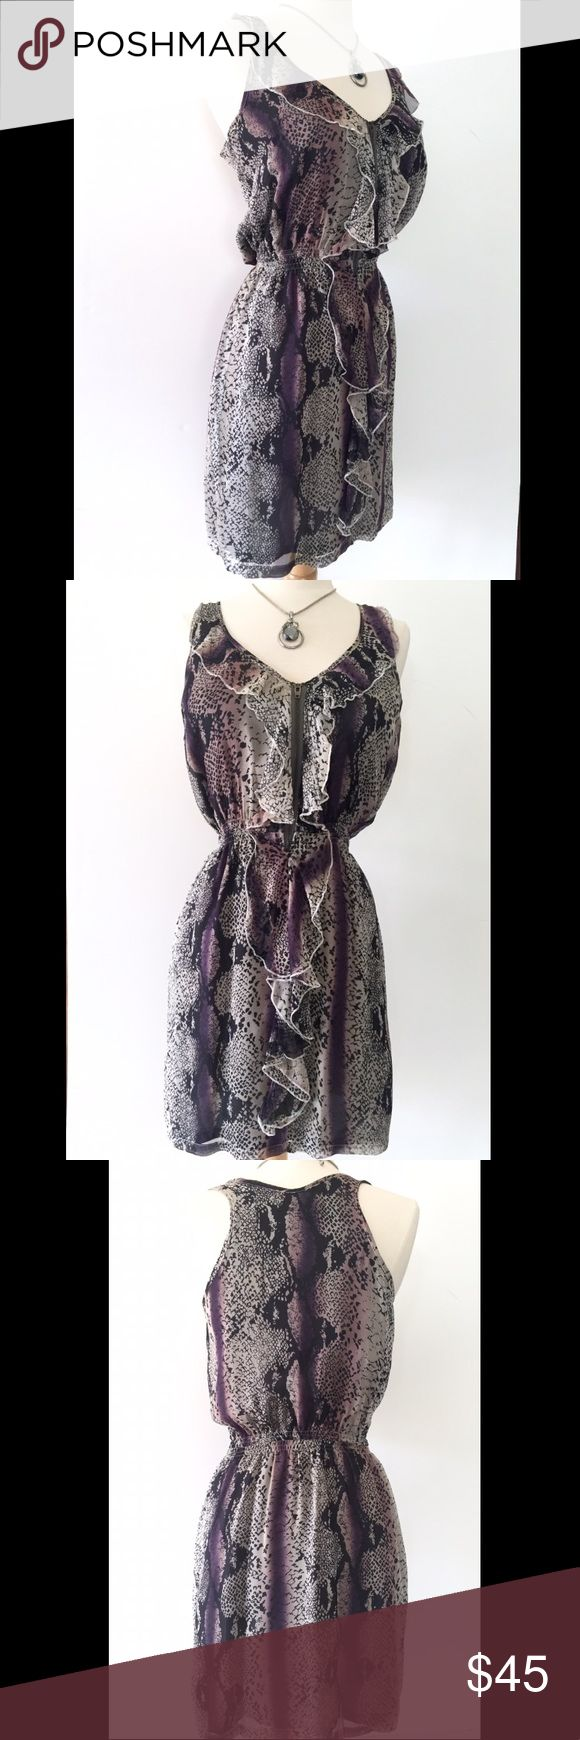 Charlie Jade 100% silk dress snake print Pretty dress from Charlie Jade. In Excellent Condition. No rips, stains or tares. 100% silk. Fully lined. Front zipper from waist to bust. Elastic band at waist for a contour fit. The color is gray, black and some tones of purple. It's above knee length. Charlie Jade Dresses Mini